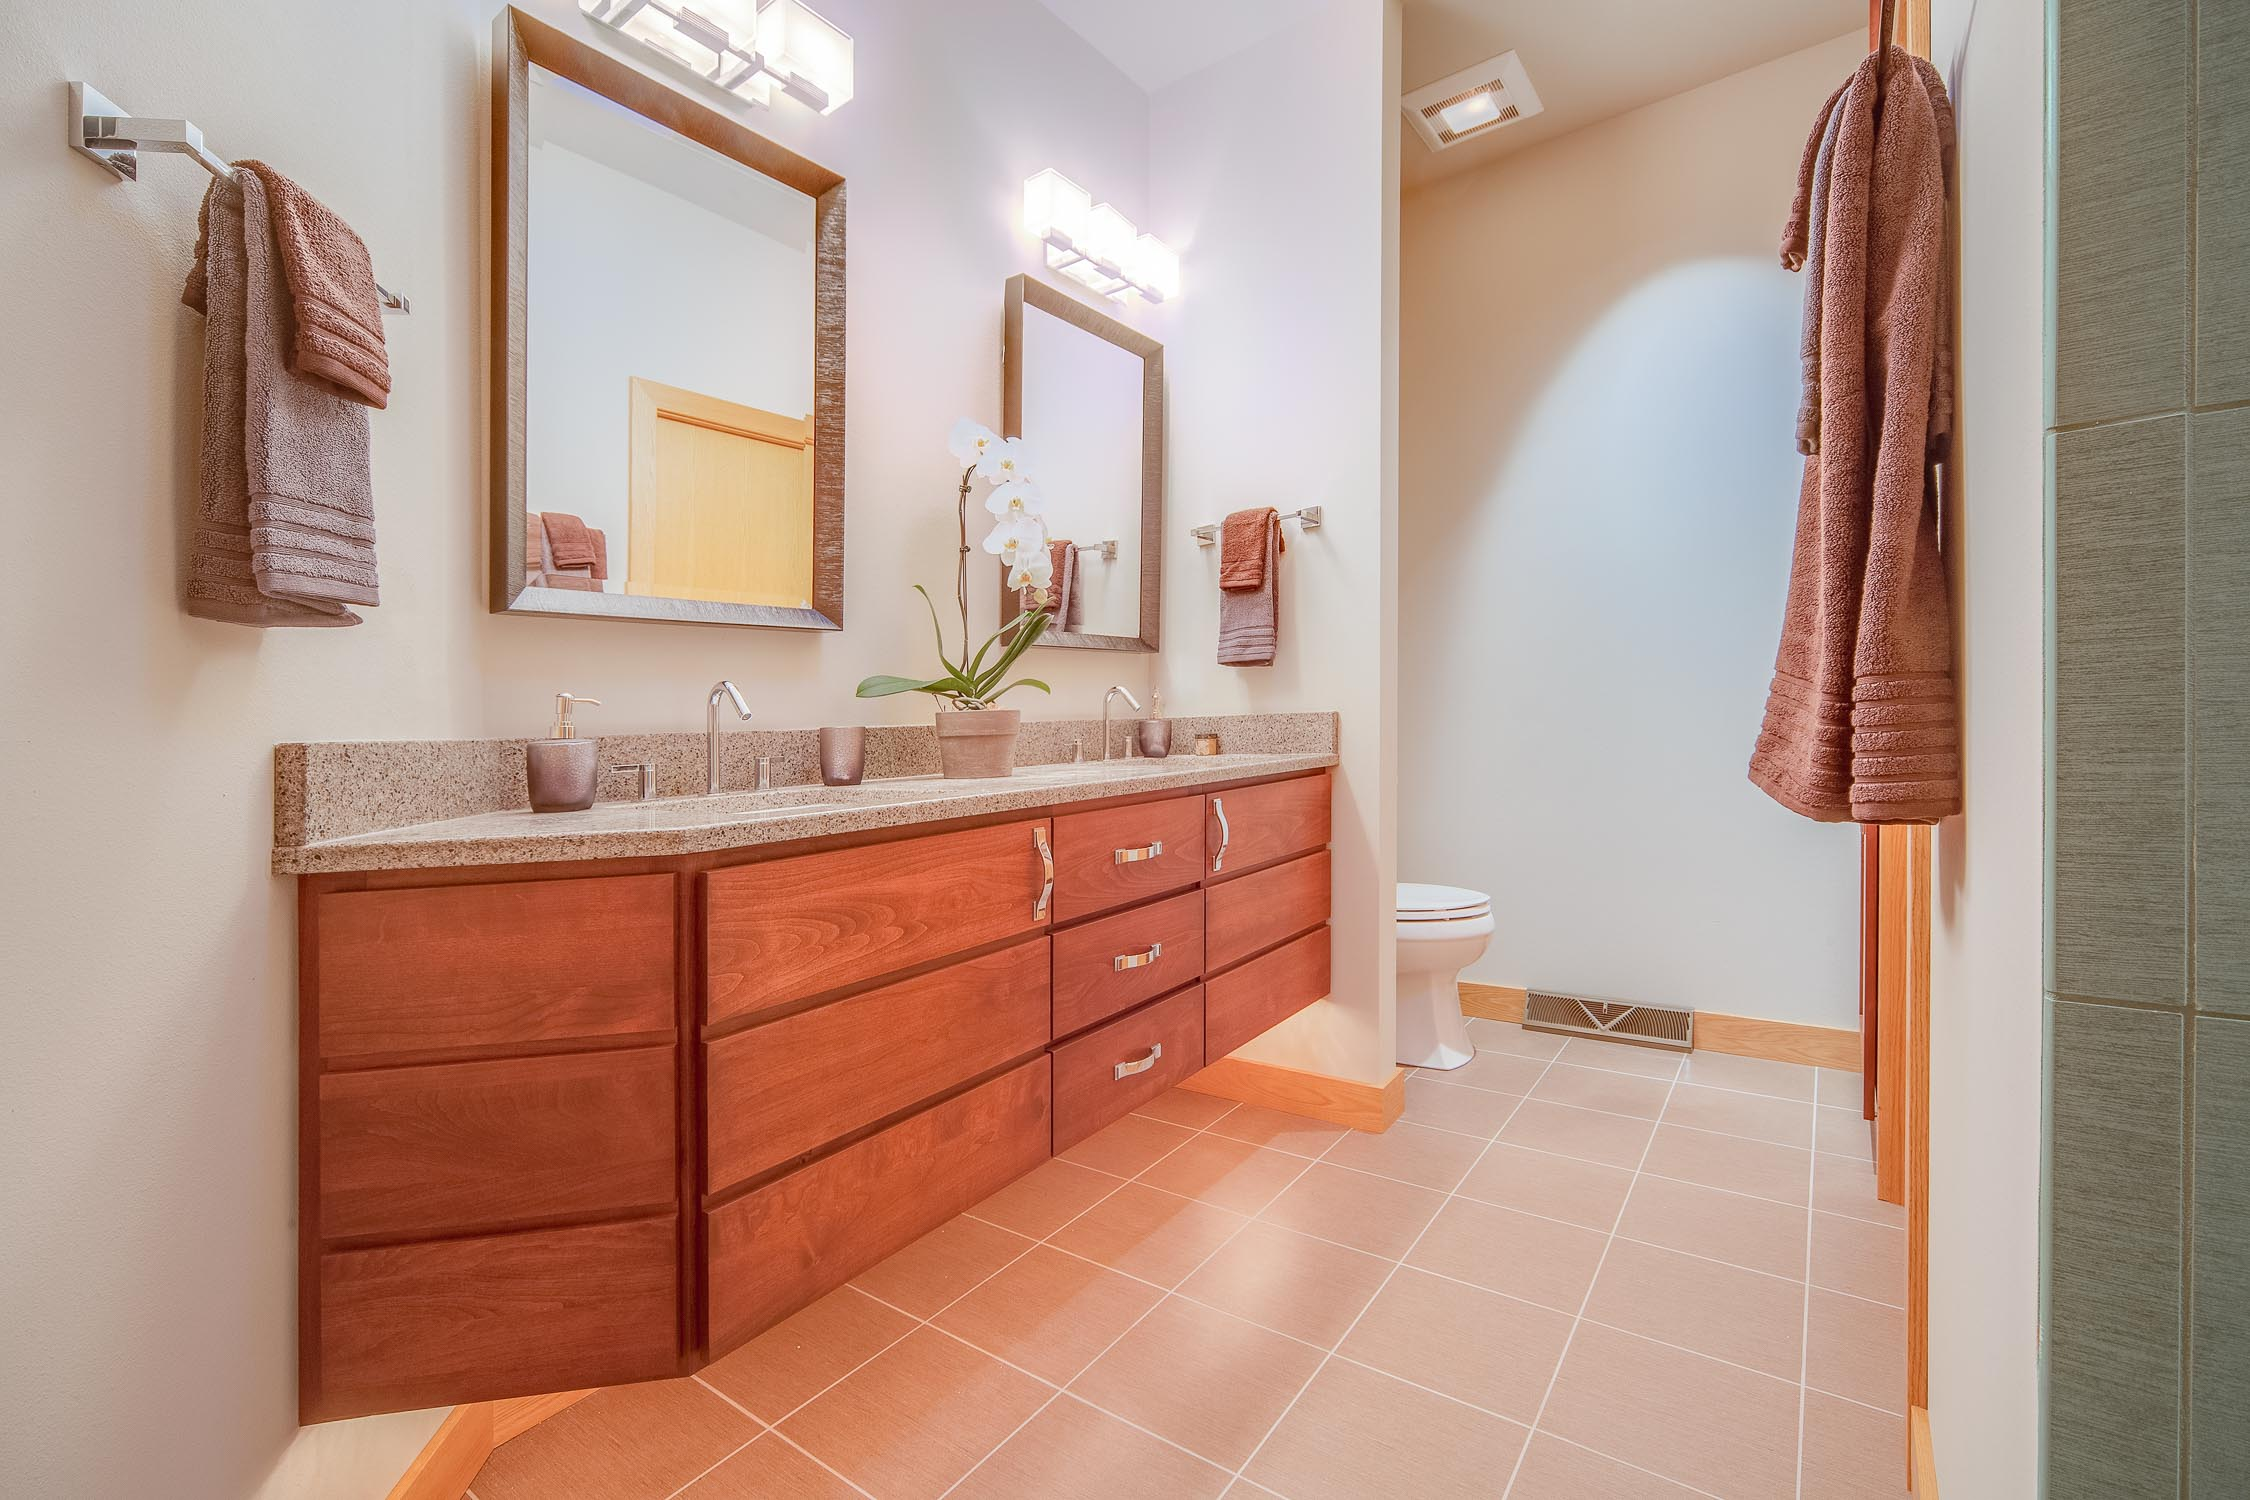 How To Choose A Bathroom Vanity For A Master Suite Degnan Design Build Remodel